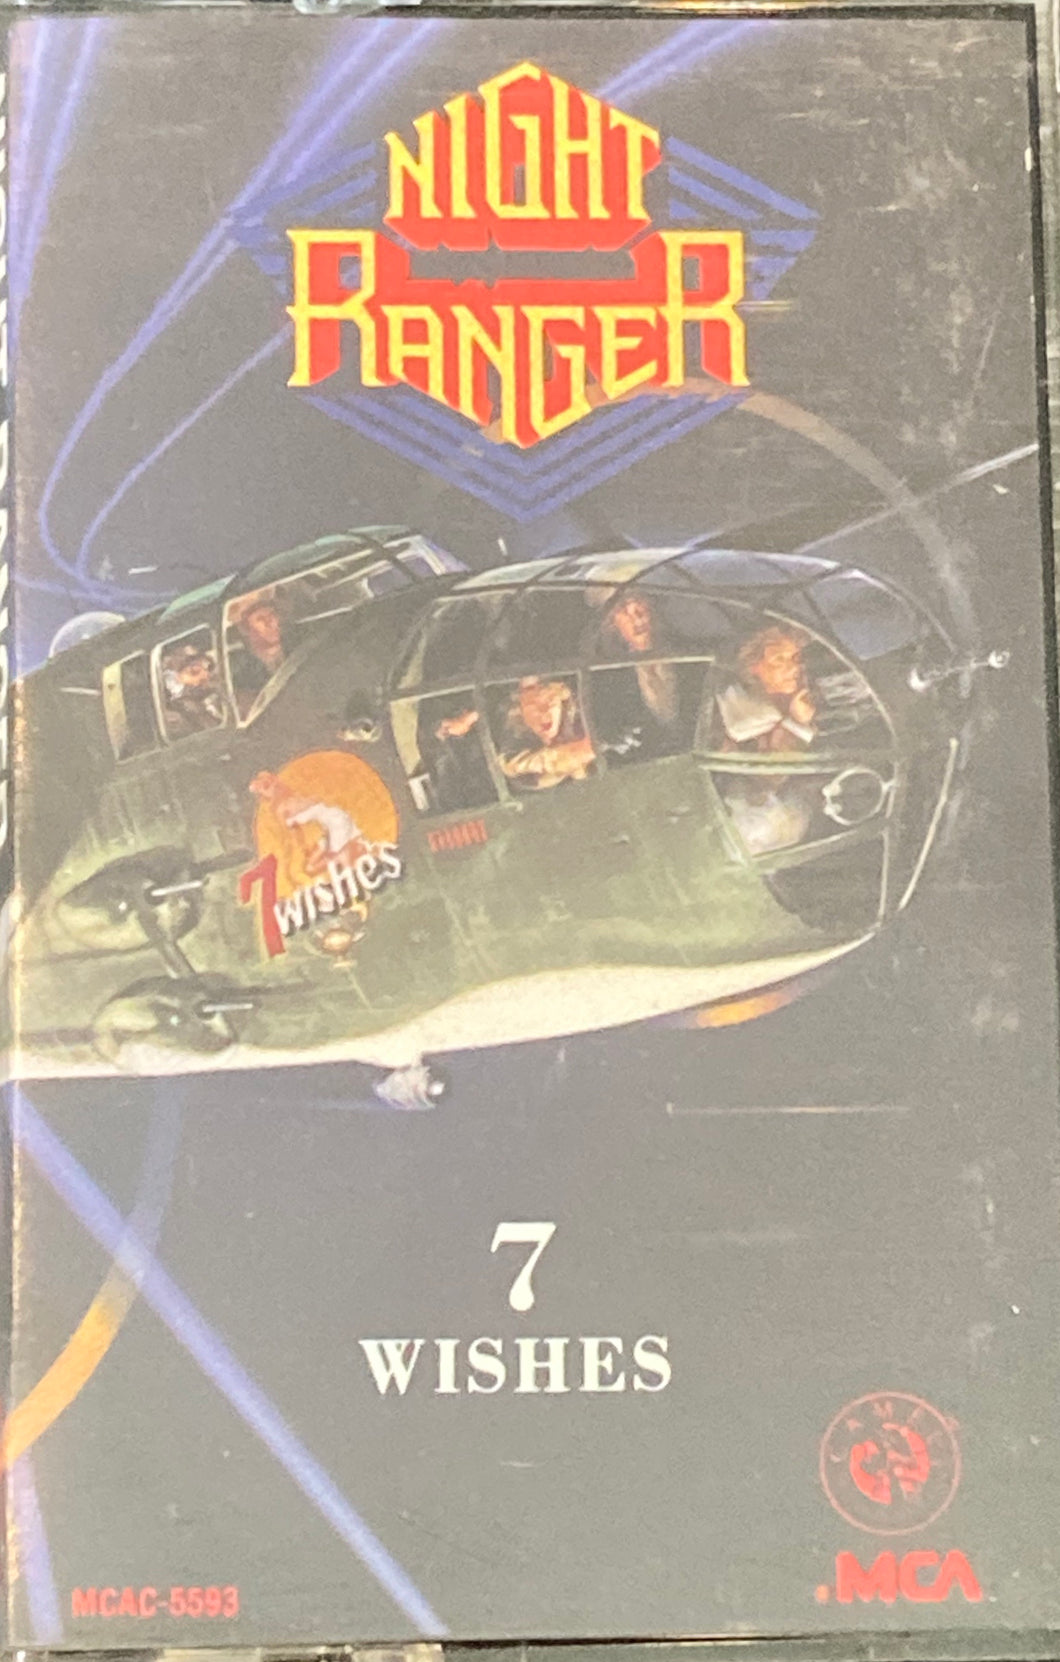 Night Ranger - 7 Wishes Cassette VG